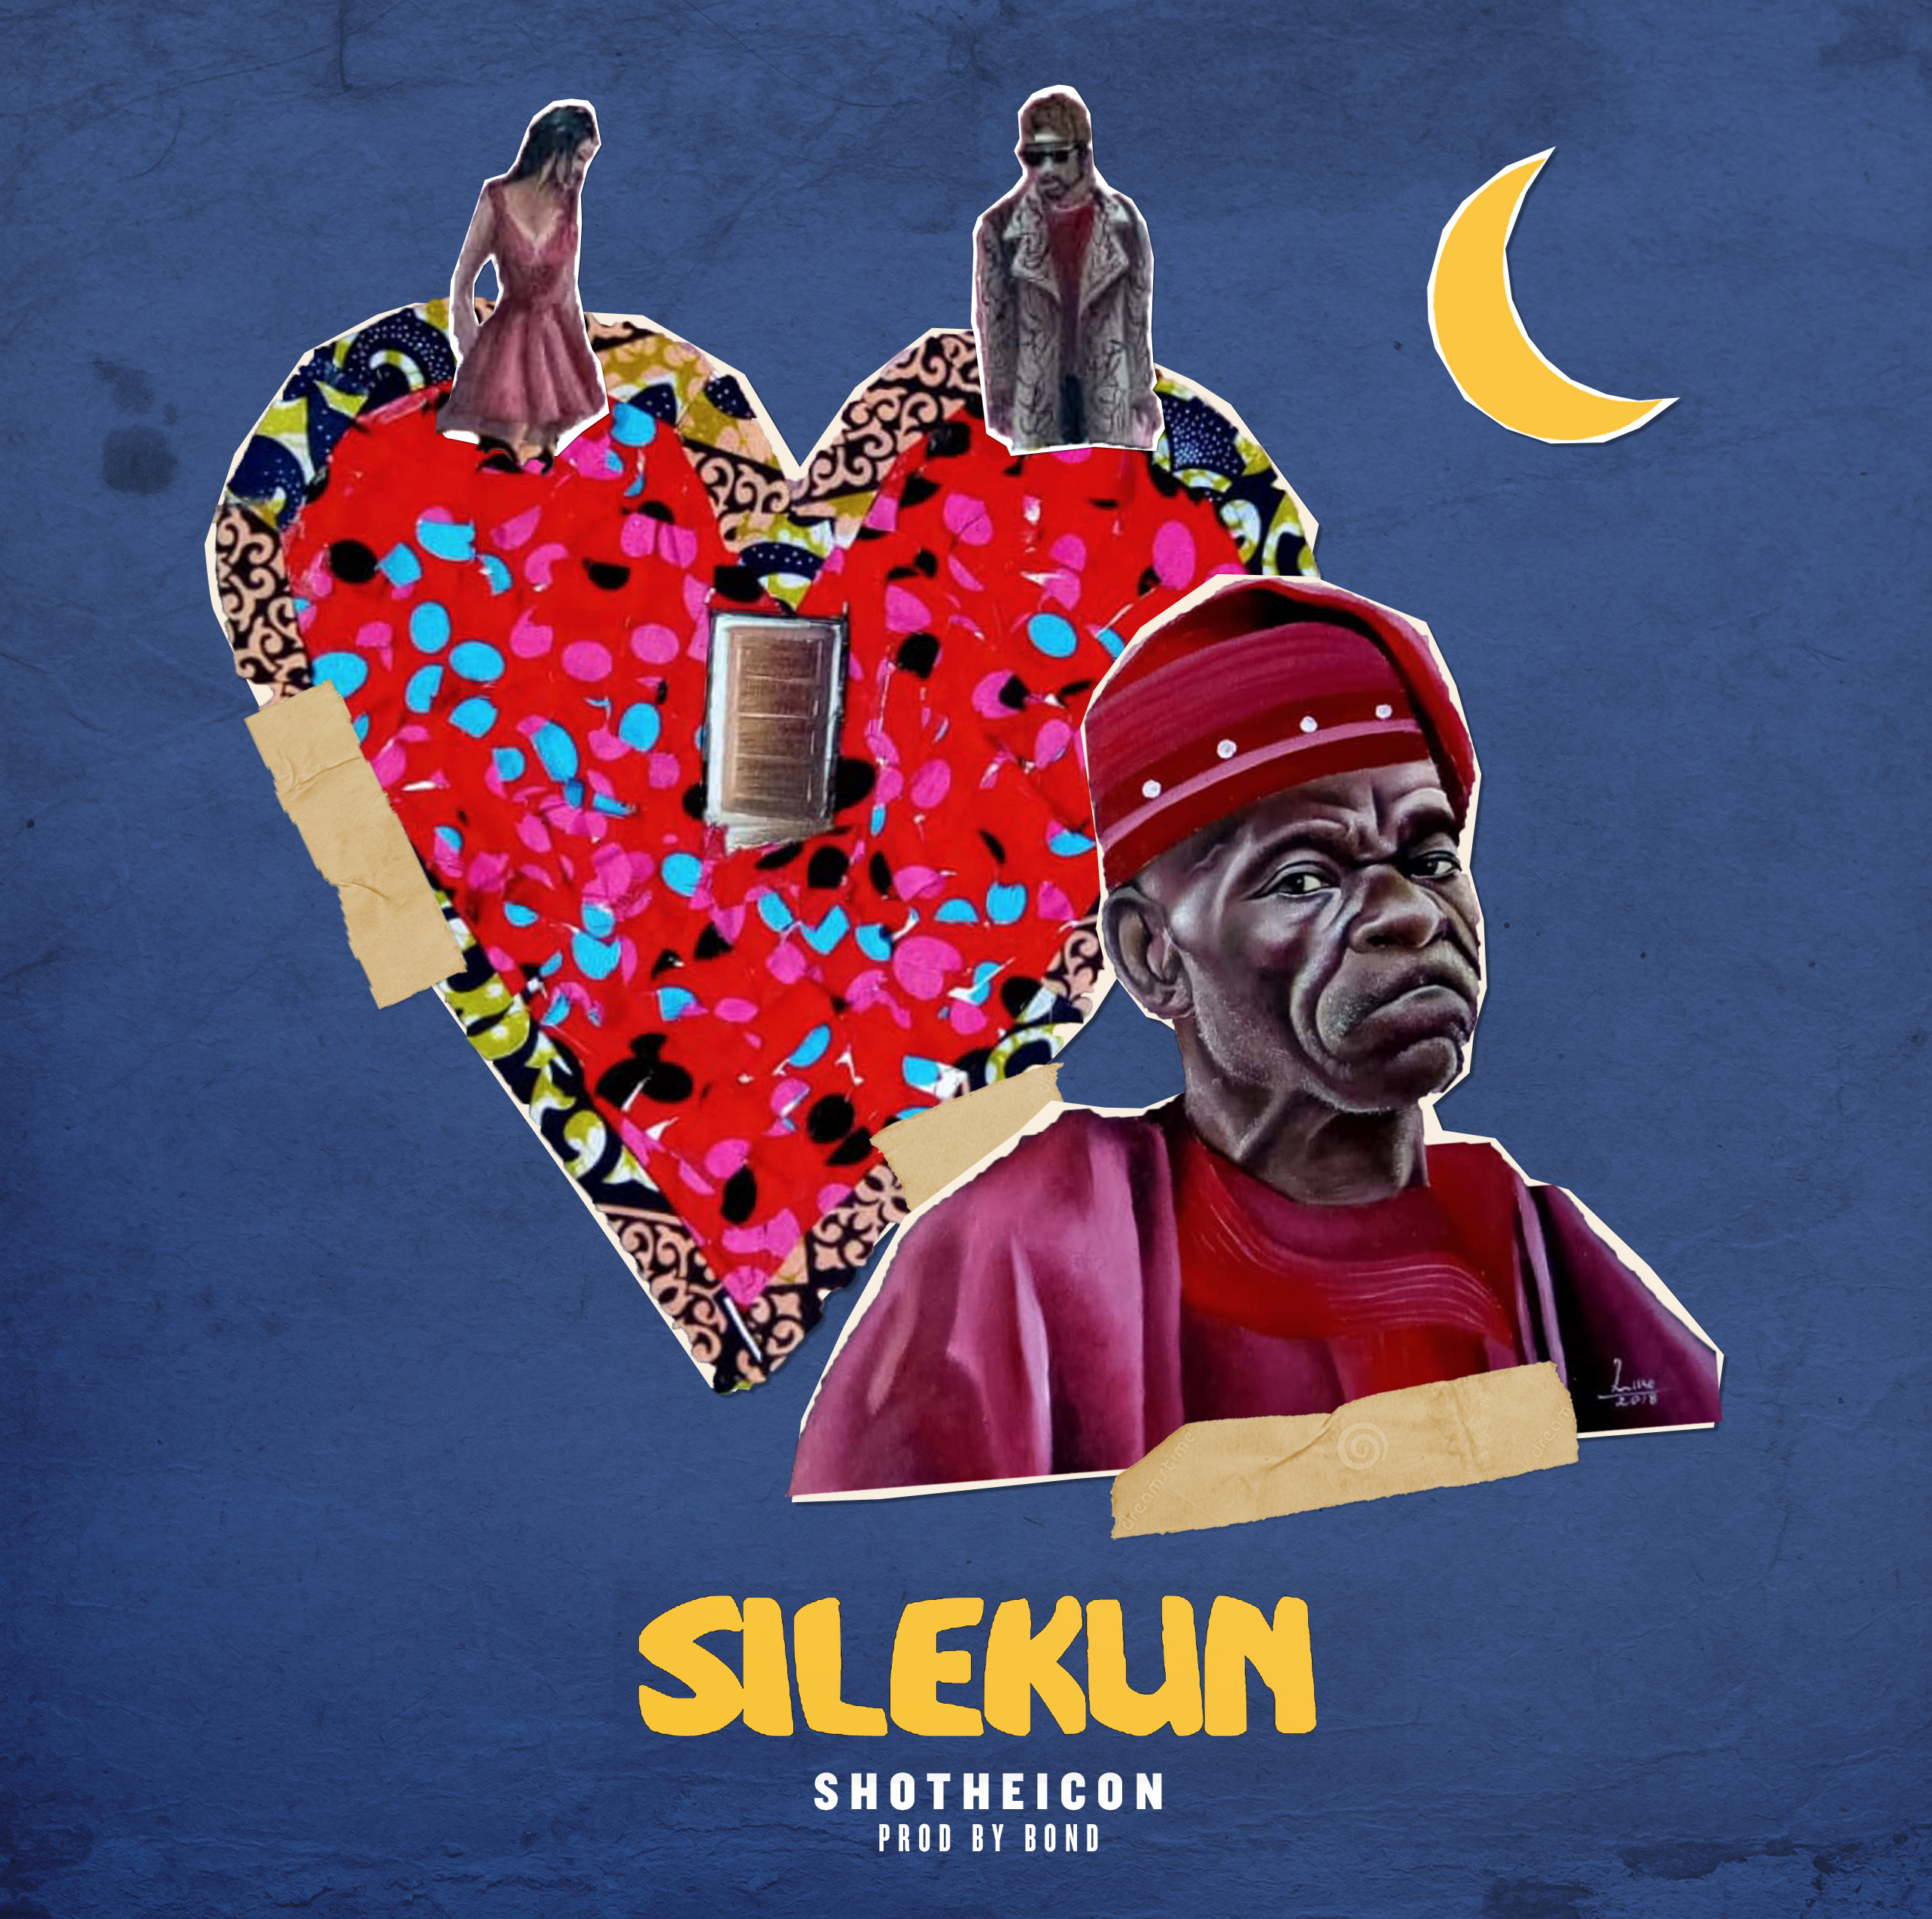 Sho The icon – Silekun